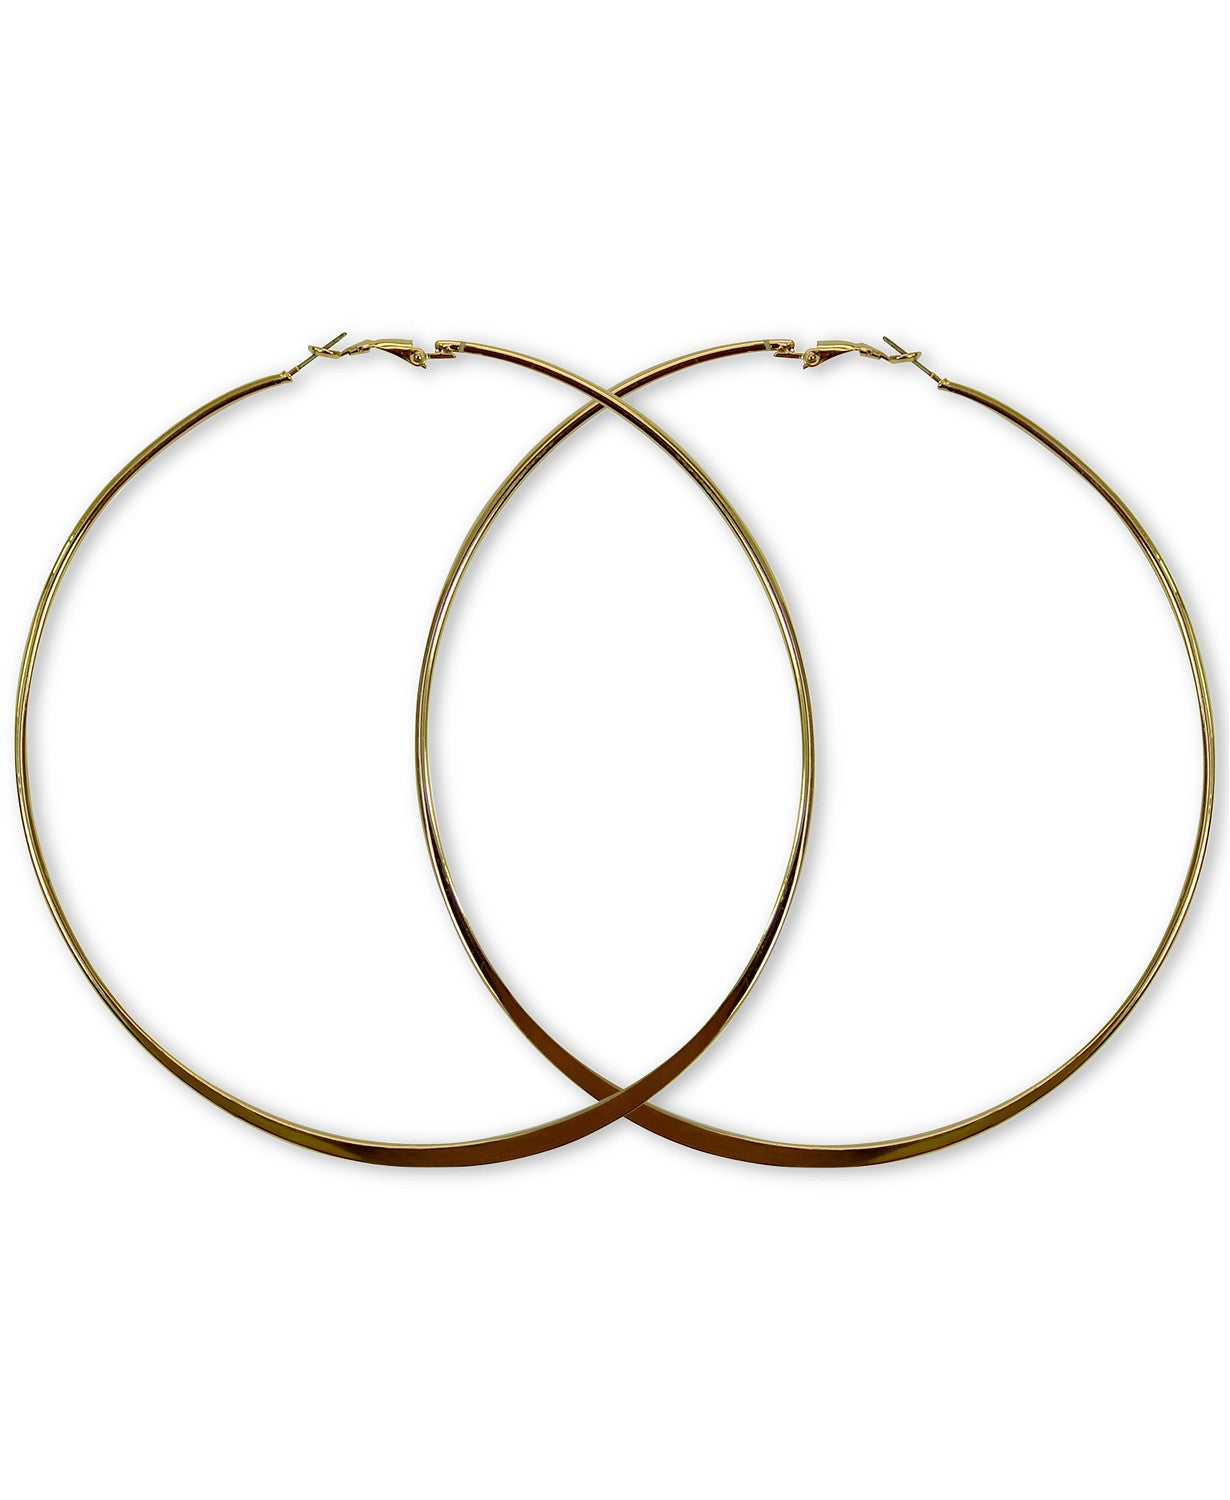 GUESS Extra-Large Hoop Earrings